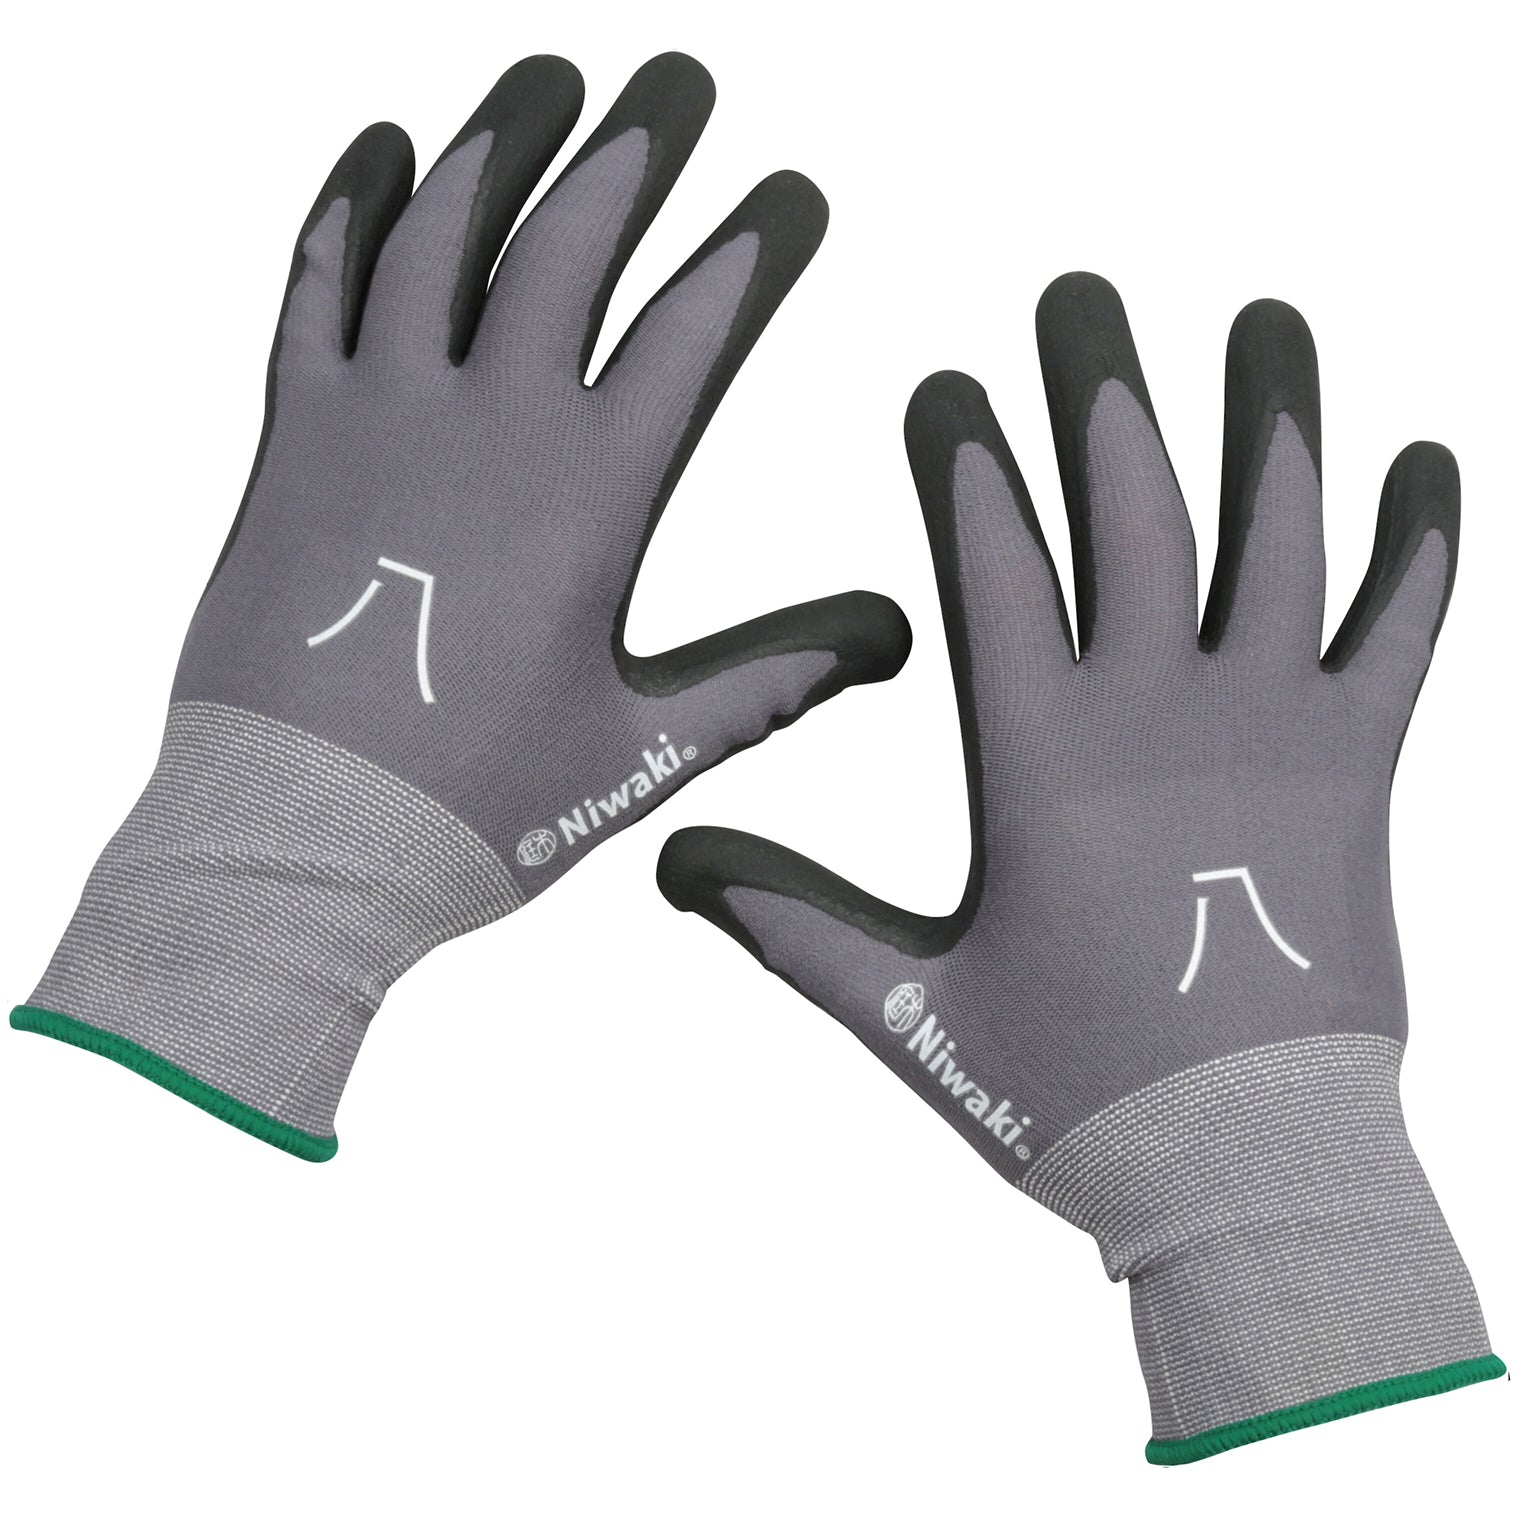 Gardening Gloves - Medium with Green Cuff